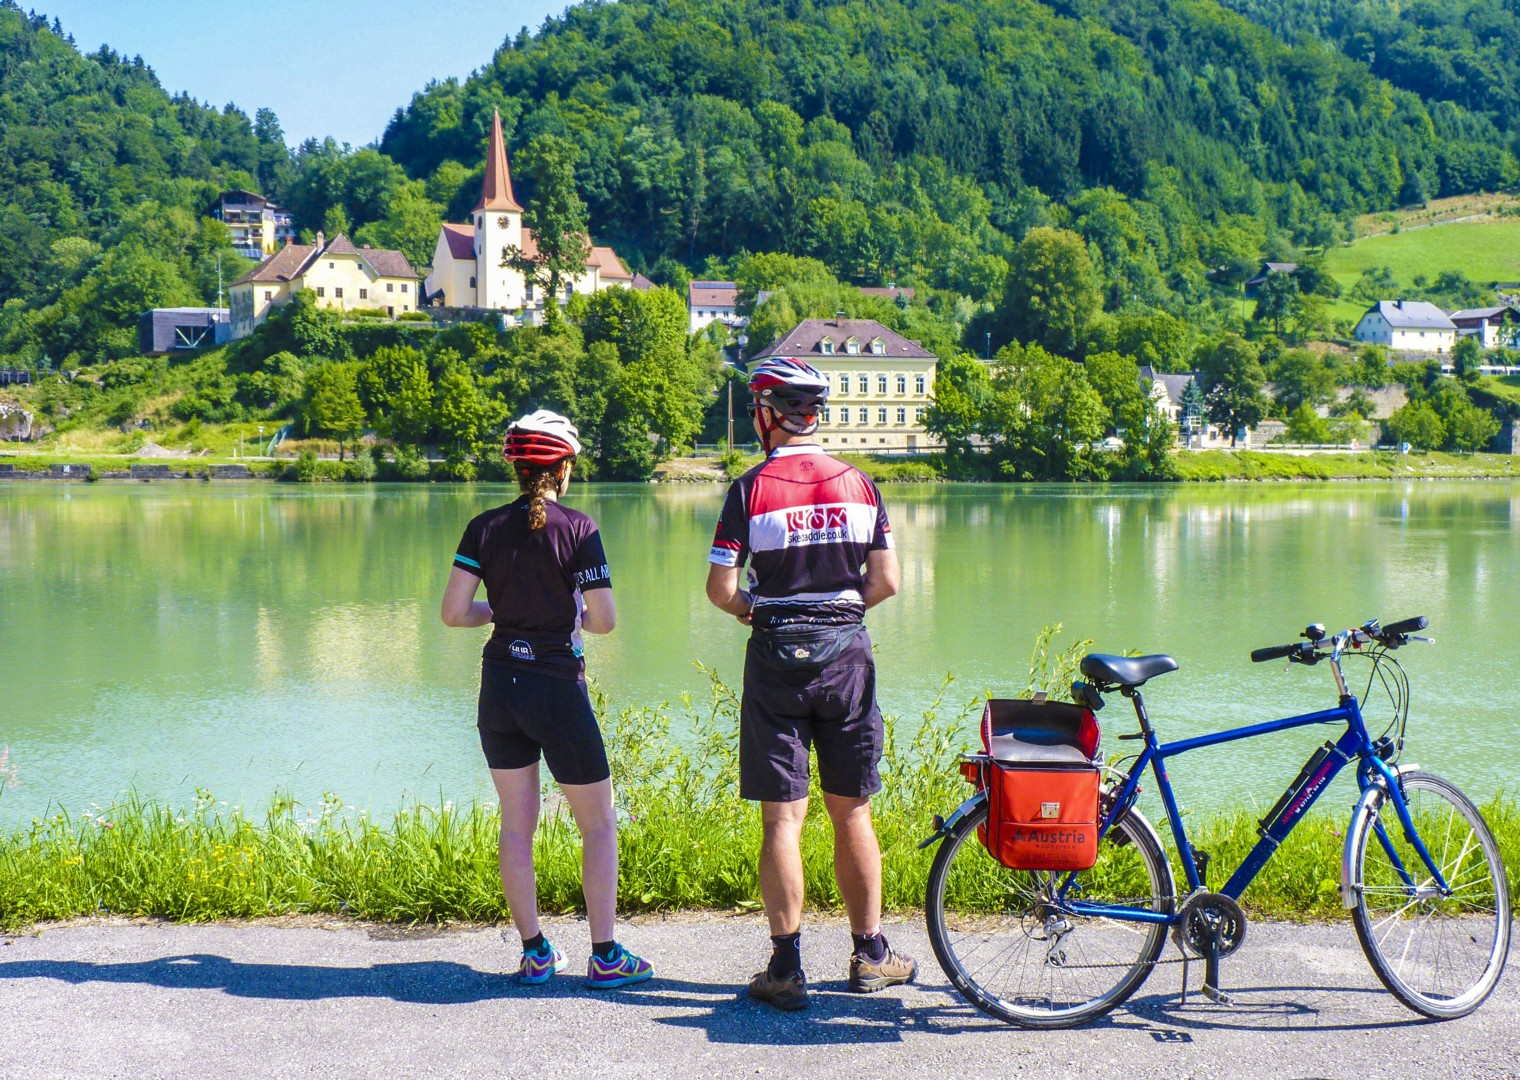 germany-austria-danube-cycle-path-cycling-holiday.jpg - Germany and Austria - The Danube Cycle Path - Supported Leisure Cycling Holiday - Leisure Cycling